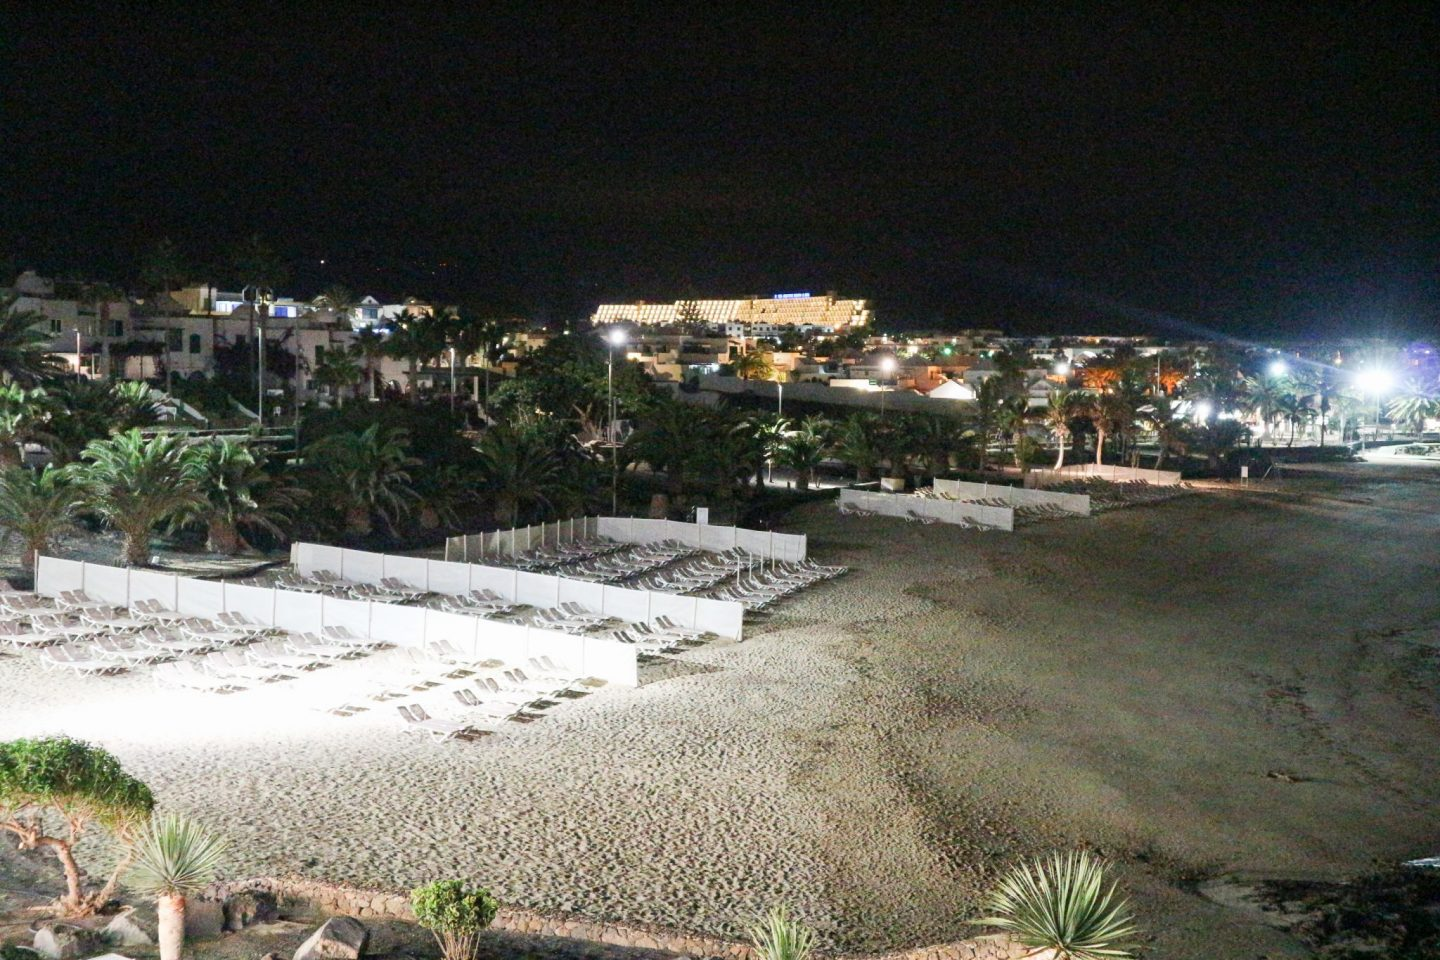 playa beach costa teguise